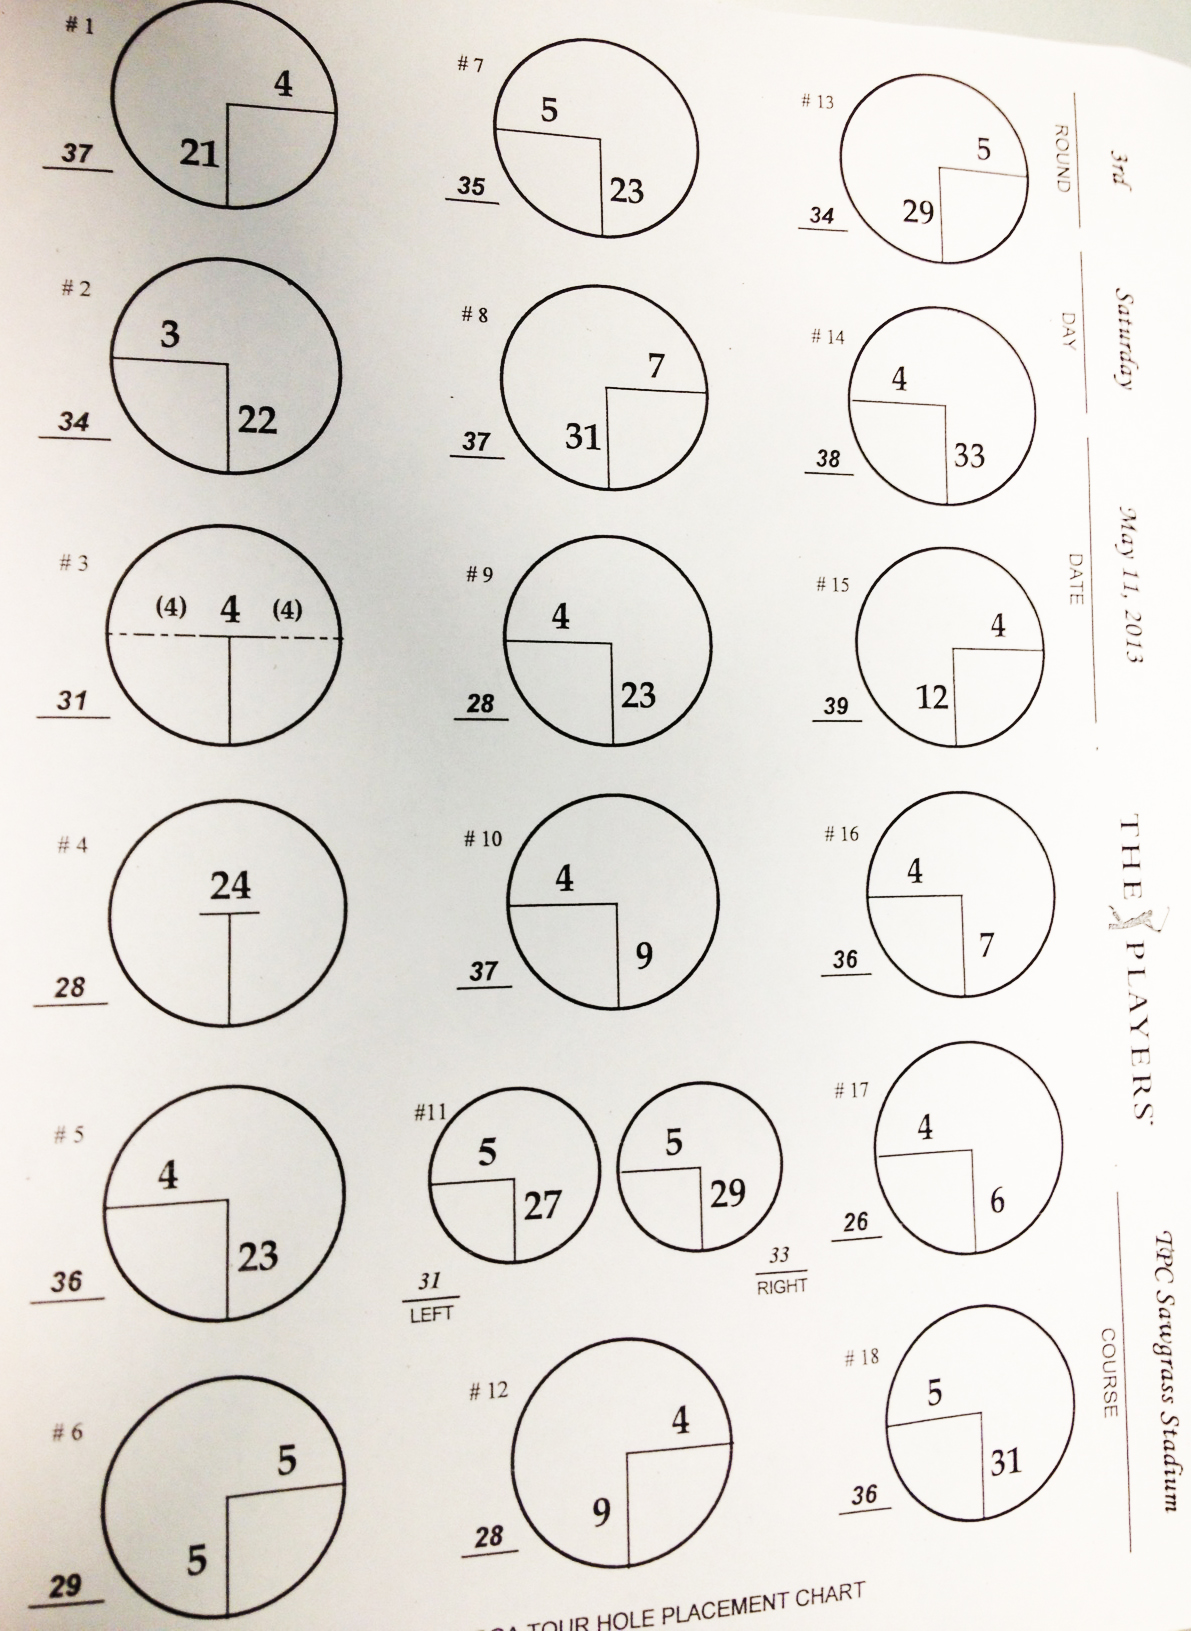 Hole locations for the third round of the Players Championship Saturday at TPC Sawgrass.